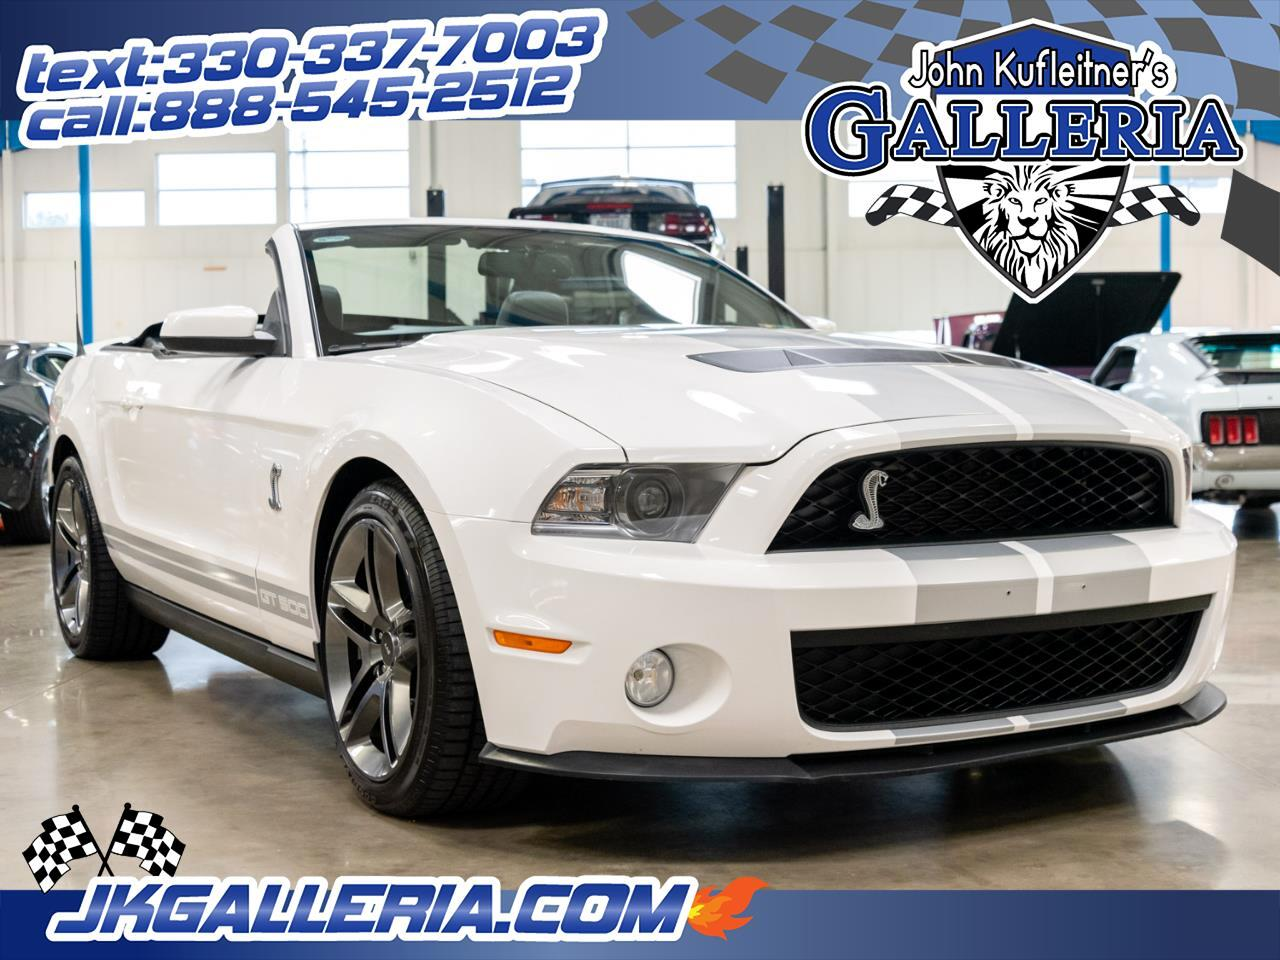 Ford Mustang 2dr Conv Shelby GT500 2012